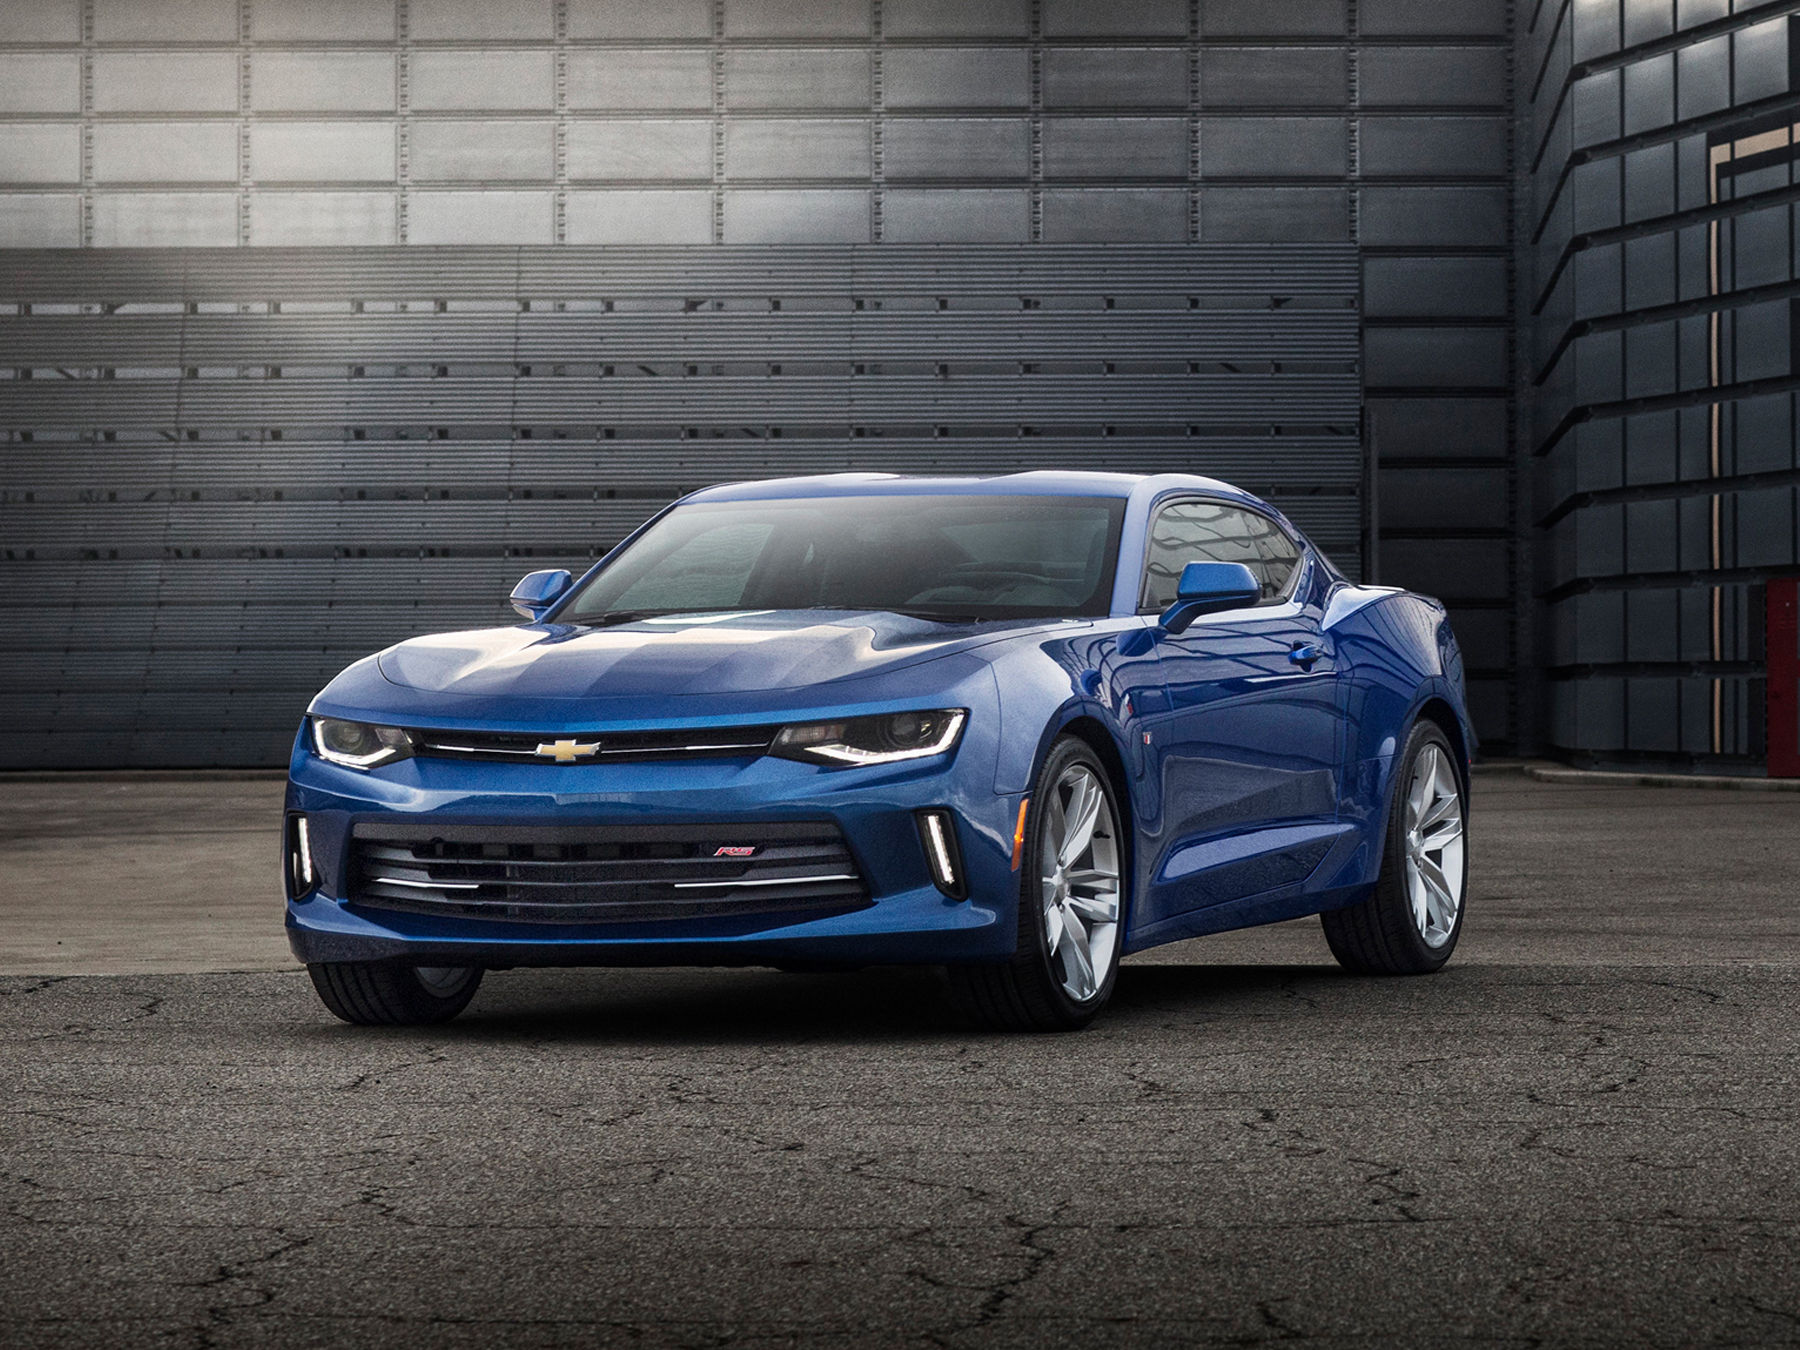 Blue chevy Camaro